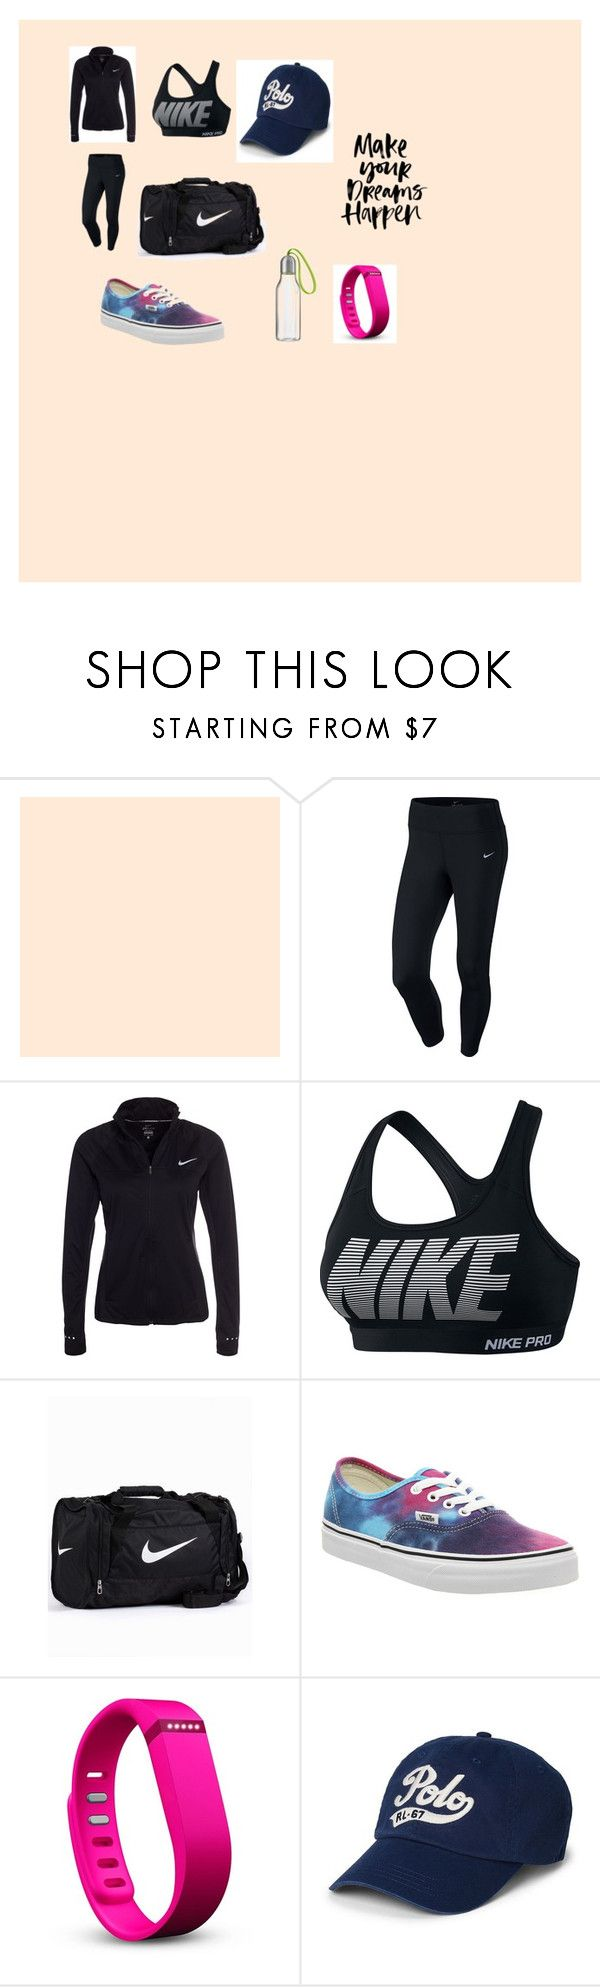 """sportswear.."" by marcia-naftal on Polyvore featuring NIKE, Vans, Fitbit, Polo Ralph Lauren, Eva Solo, women's clothing, women, female, woman and misses"